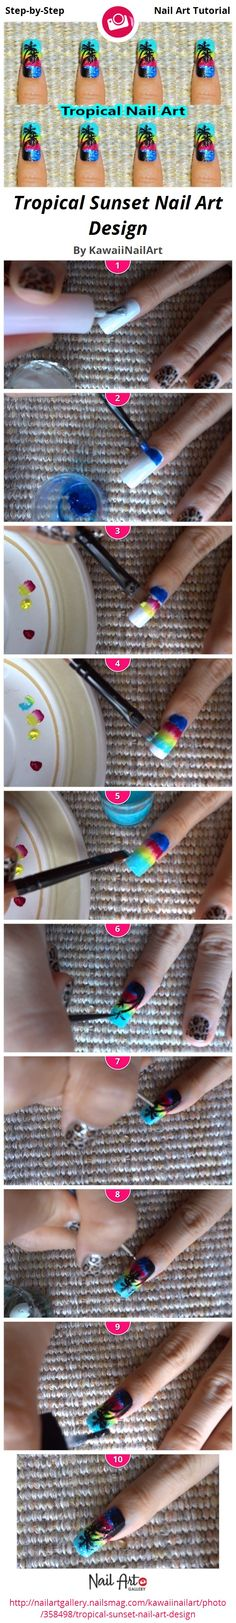 Tropical Sunset Nail Art Design - Nail Art Gallery Step-by-Step Tutorial Photos